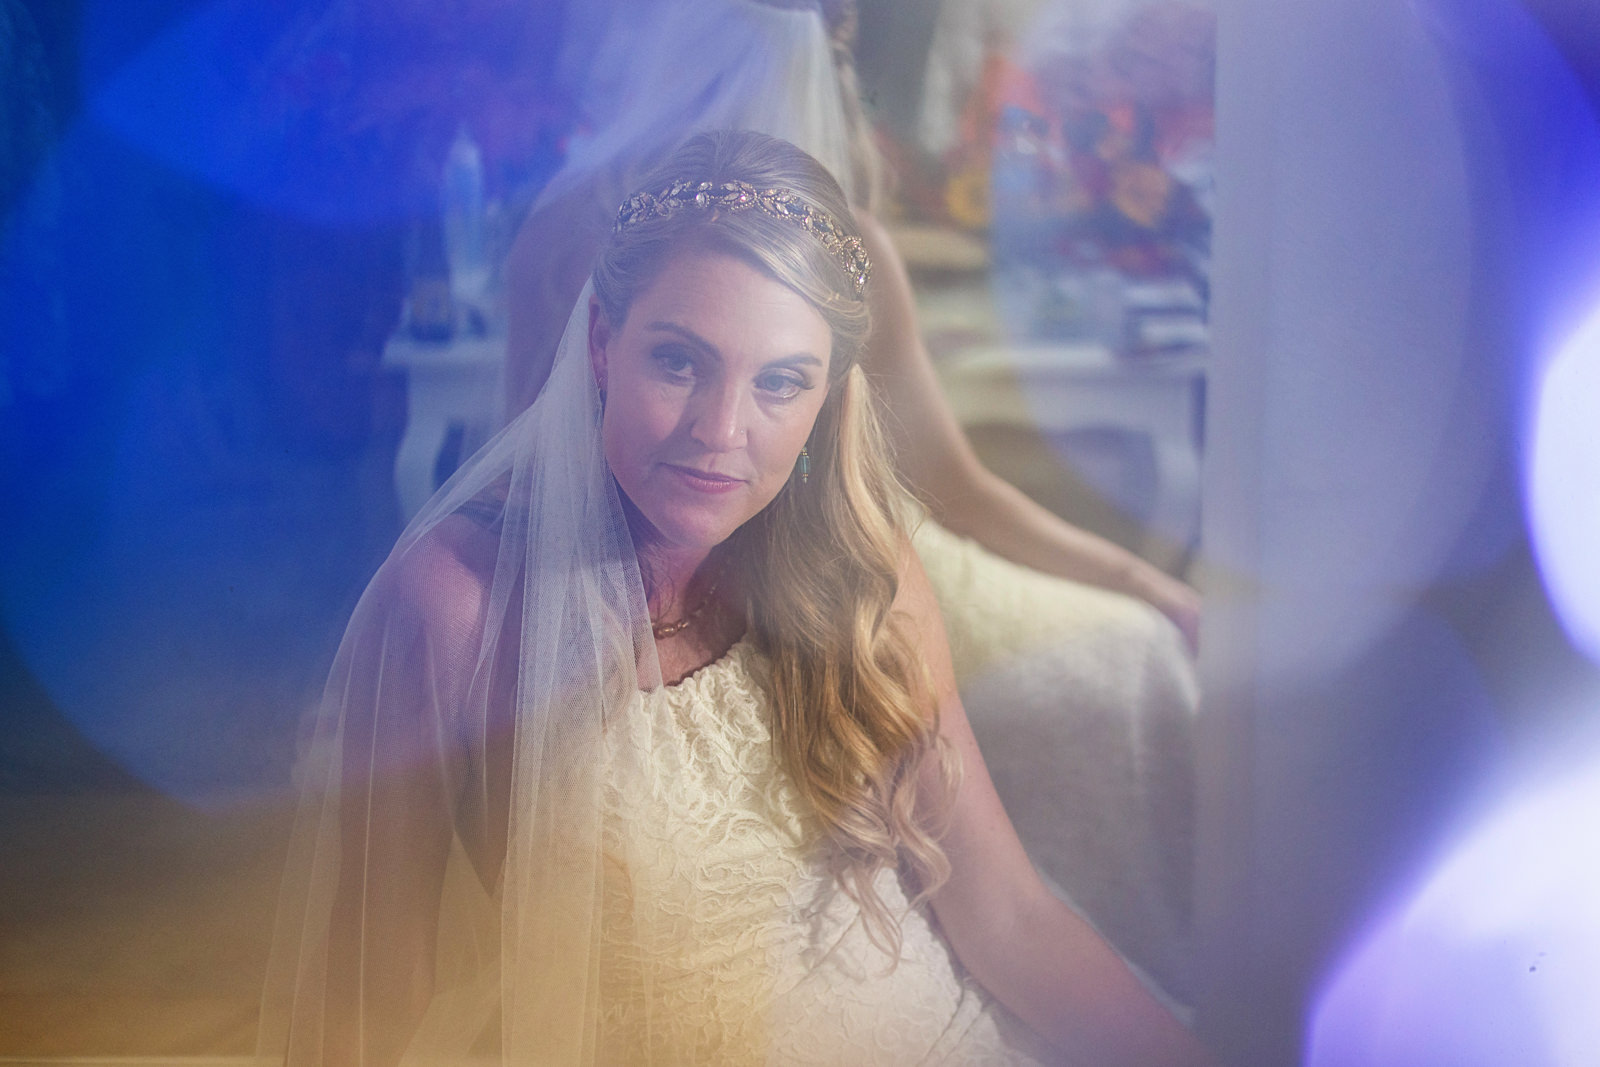 Bride's portrait through colored lens flare